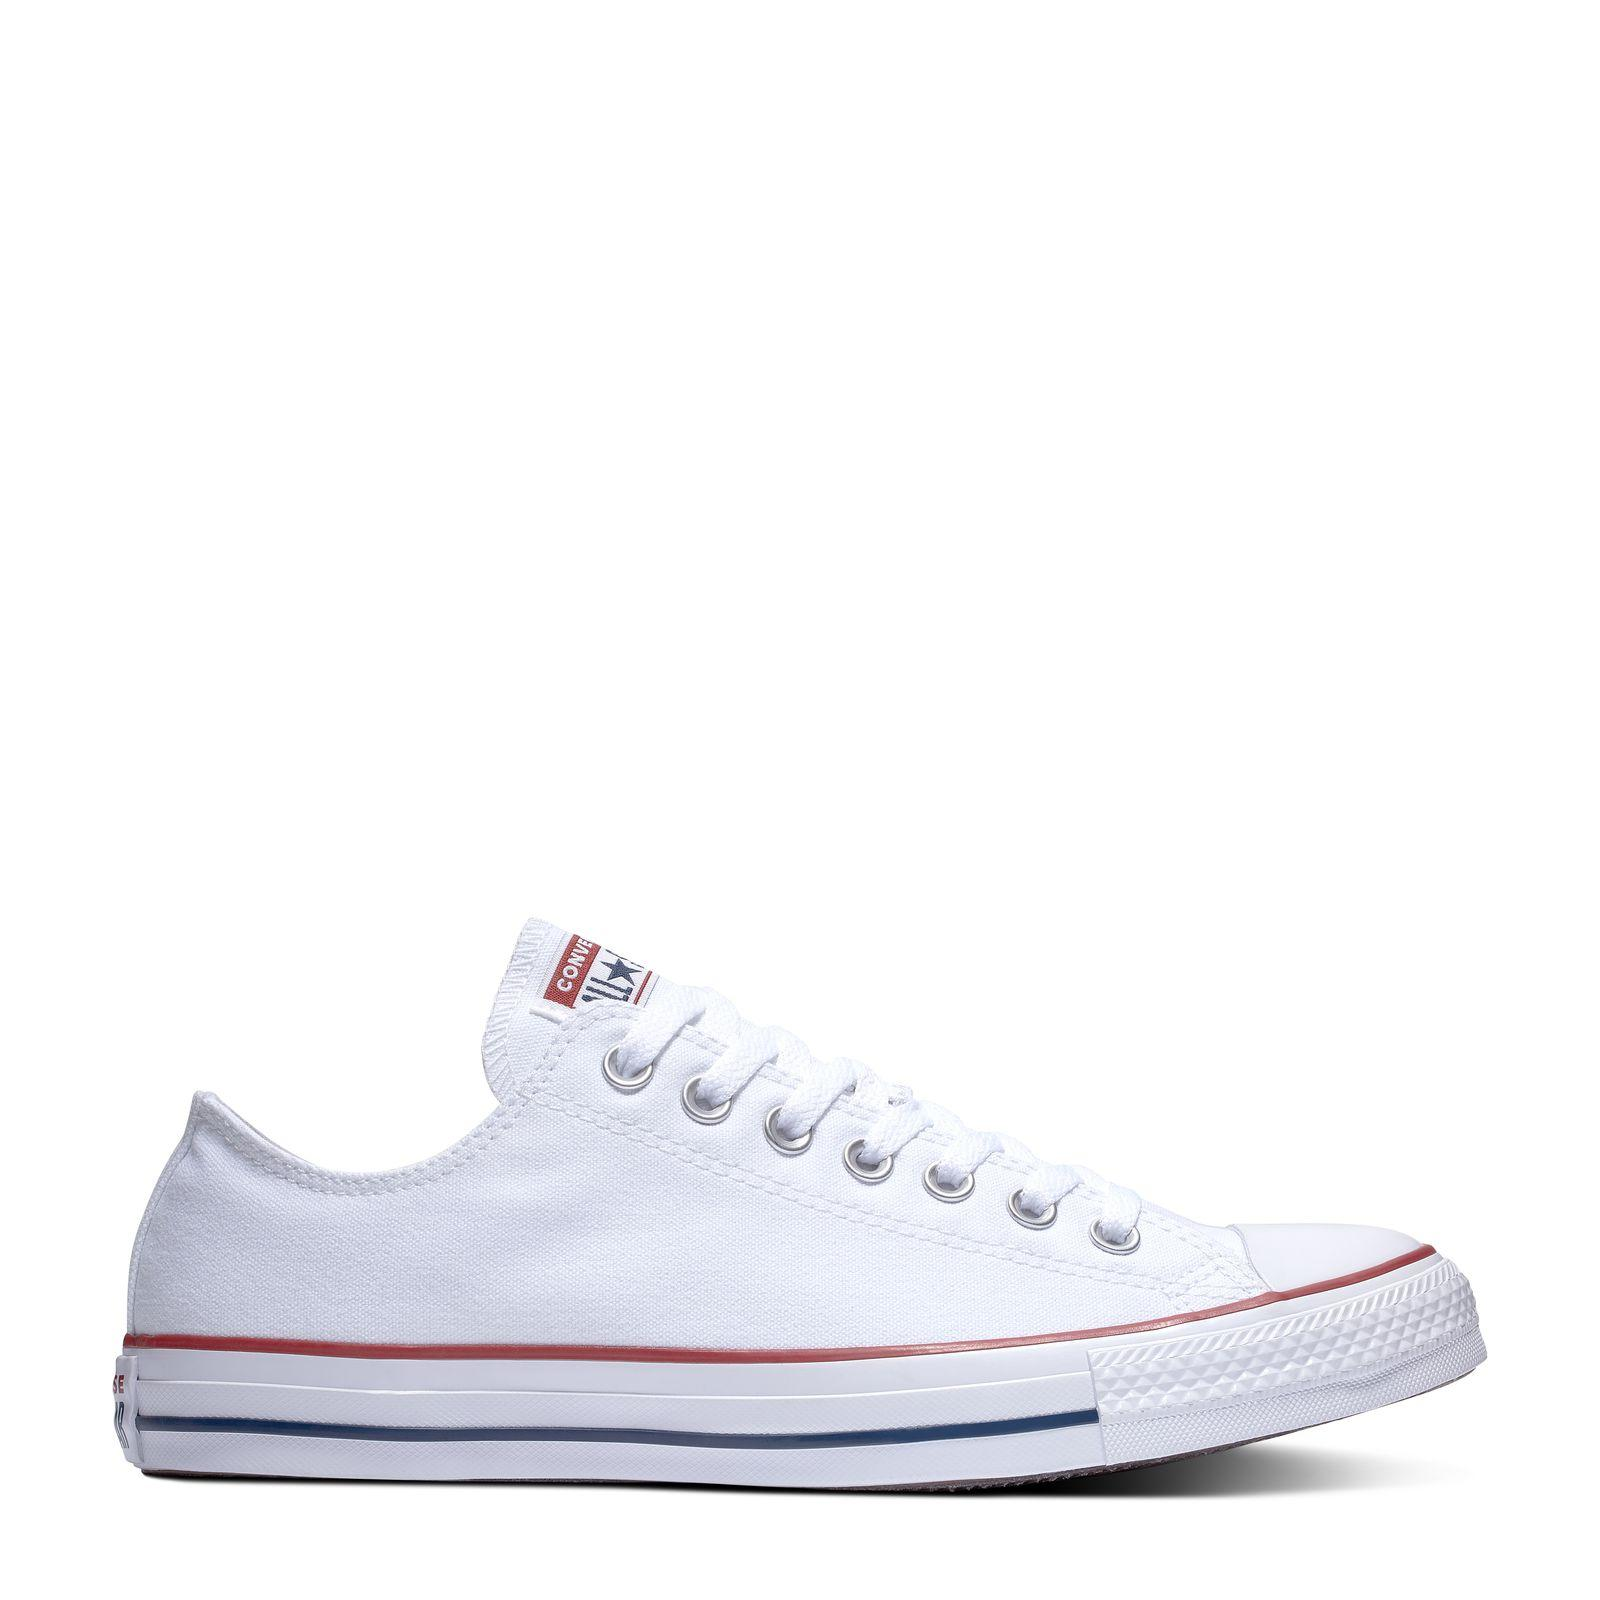 5f0dc0c329ec2 CONVERSE CHUCK TAYLOR ALL STAR - OX - OPTICAL WHITE M7652C